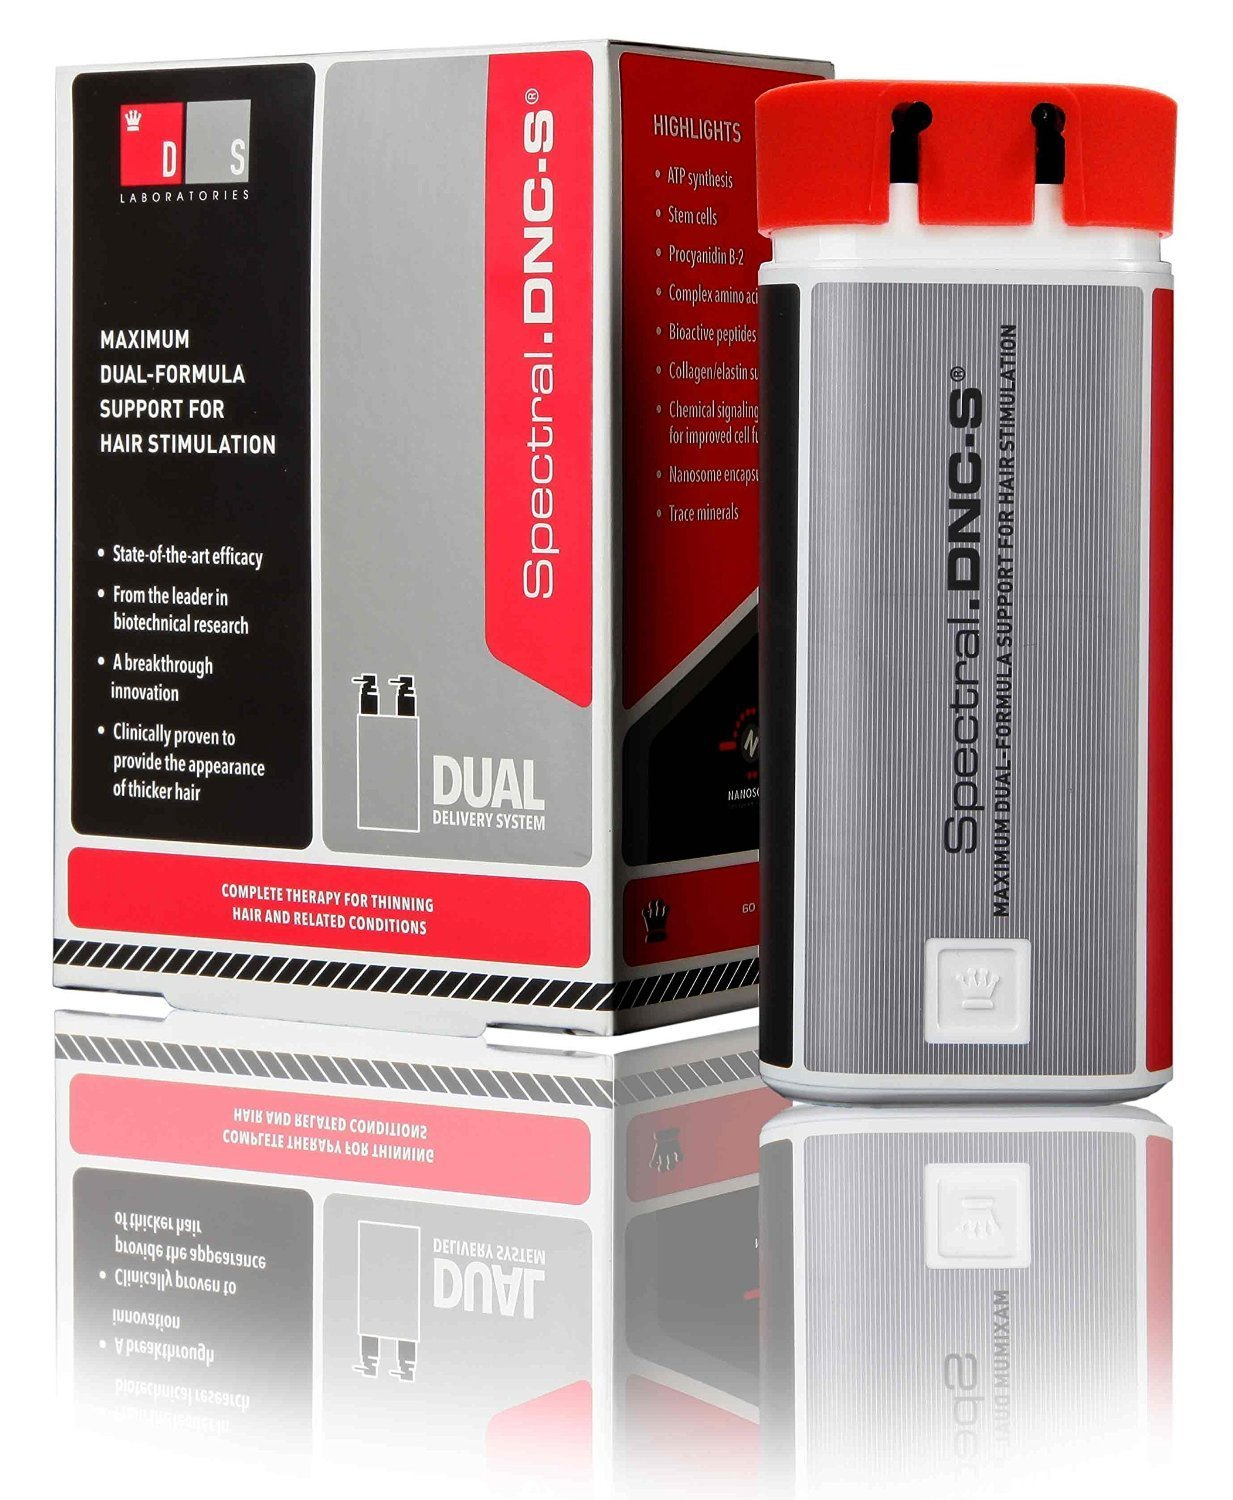 DS Laboratories Spectral.DNC-S Advanced Hair Regrowth Treatment and Stimulating Serum (60mL) Hair Care & Styling